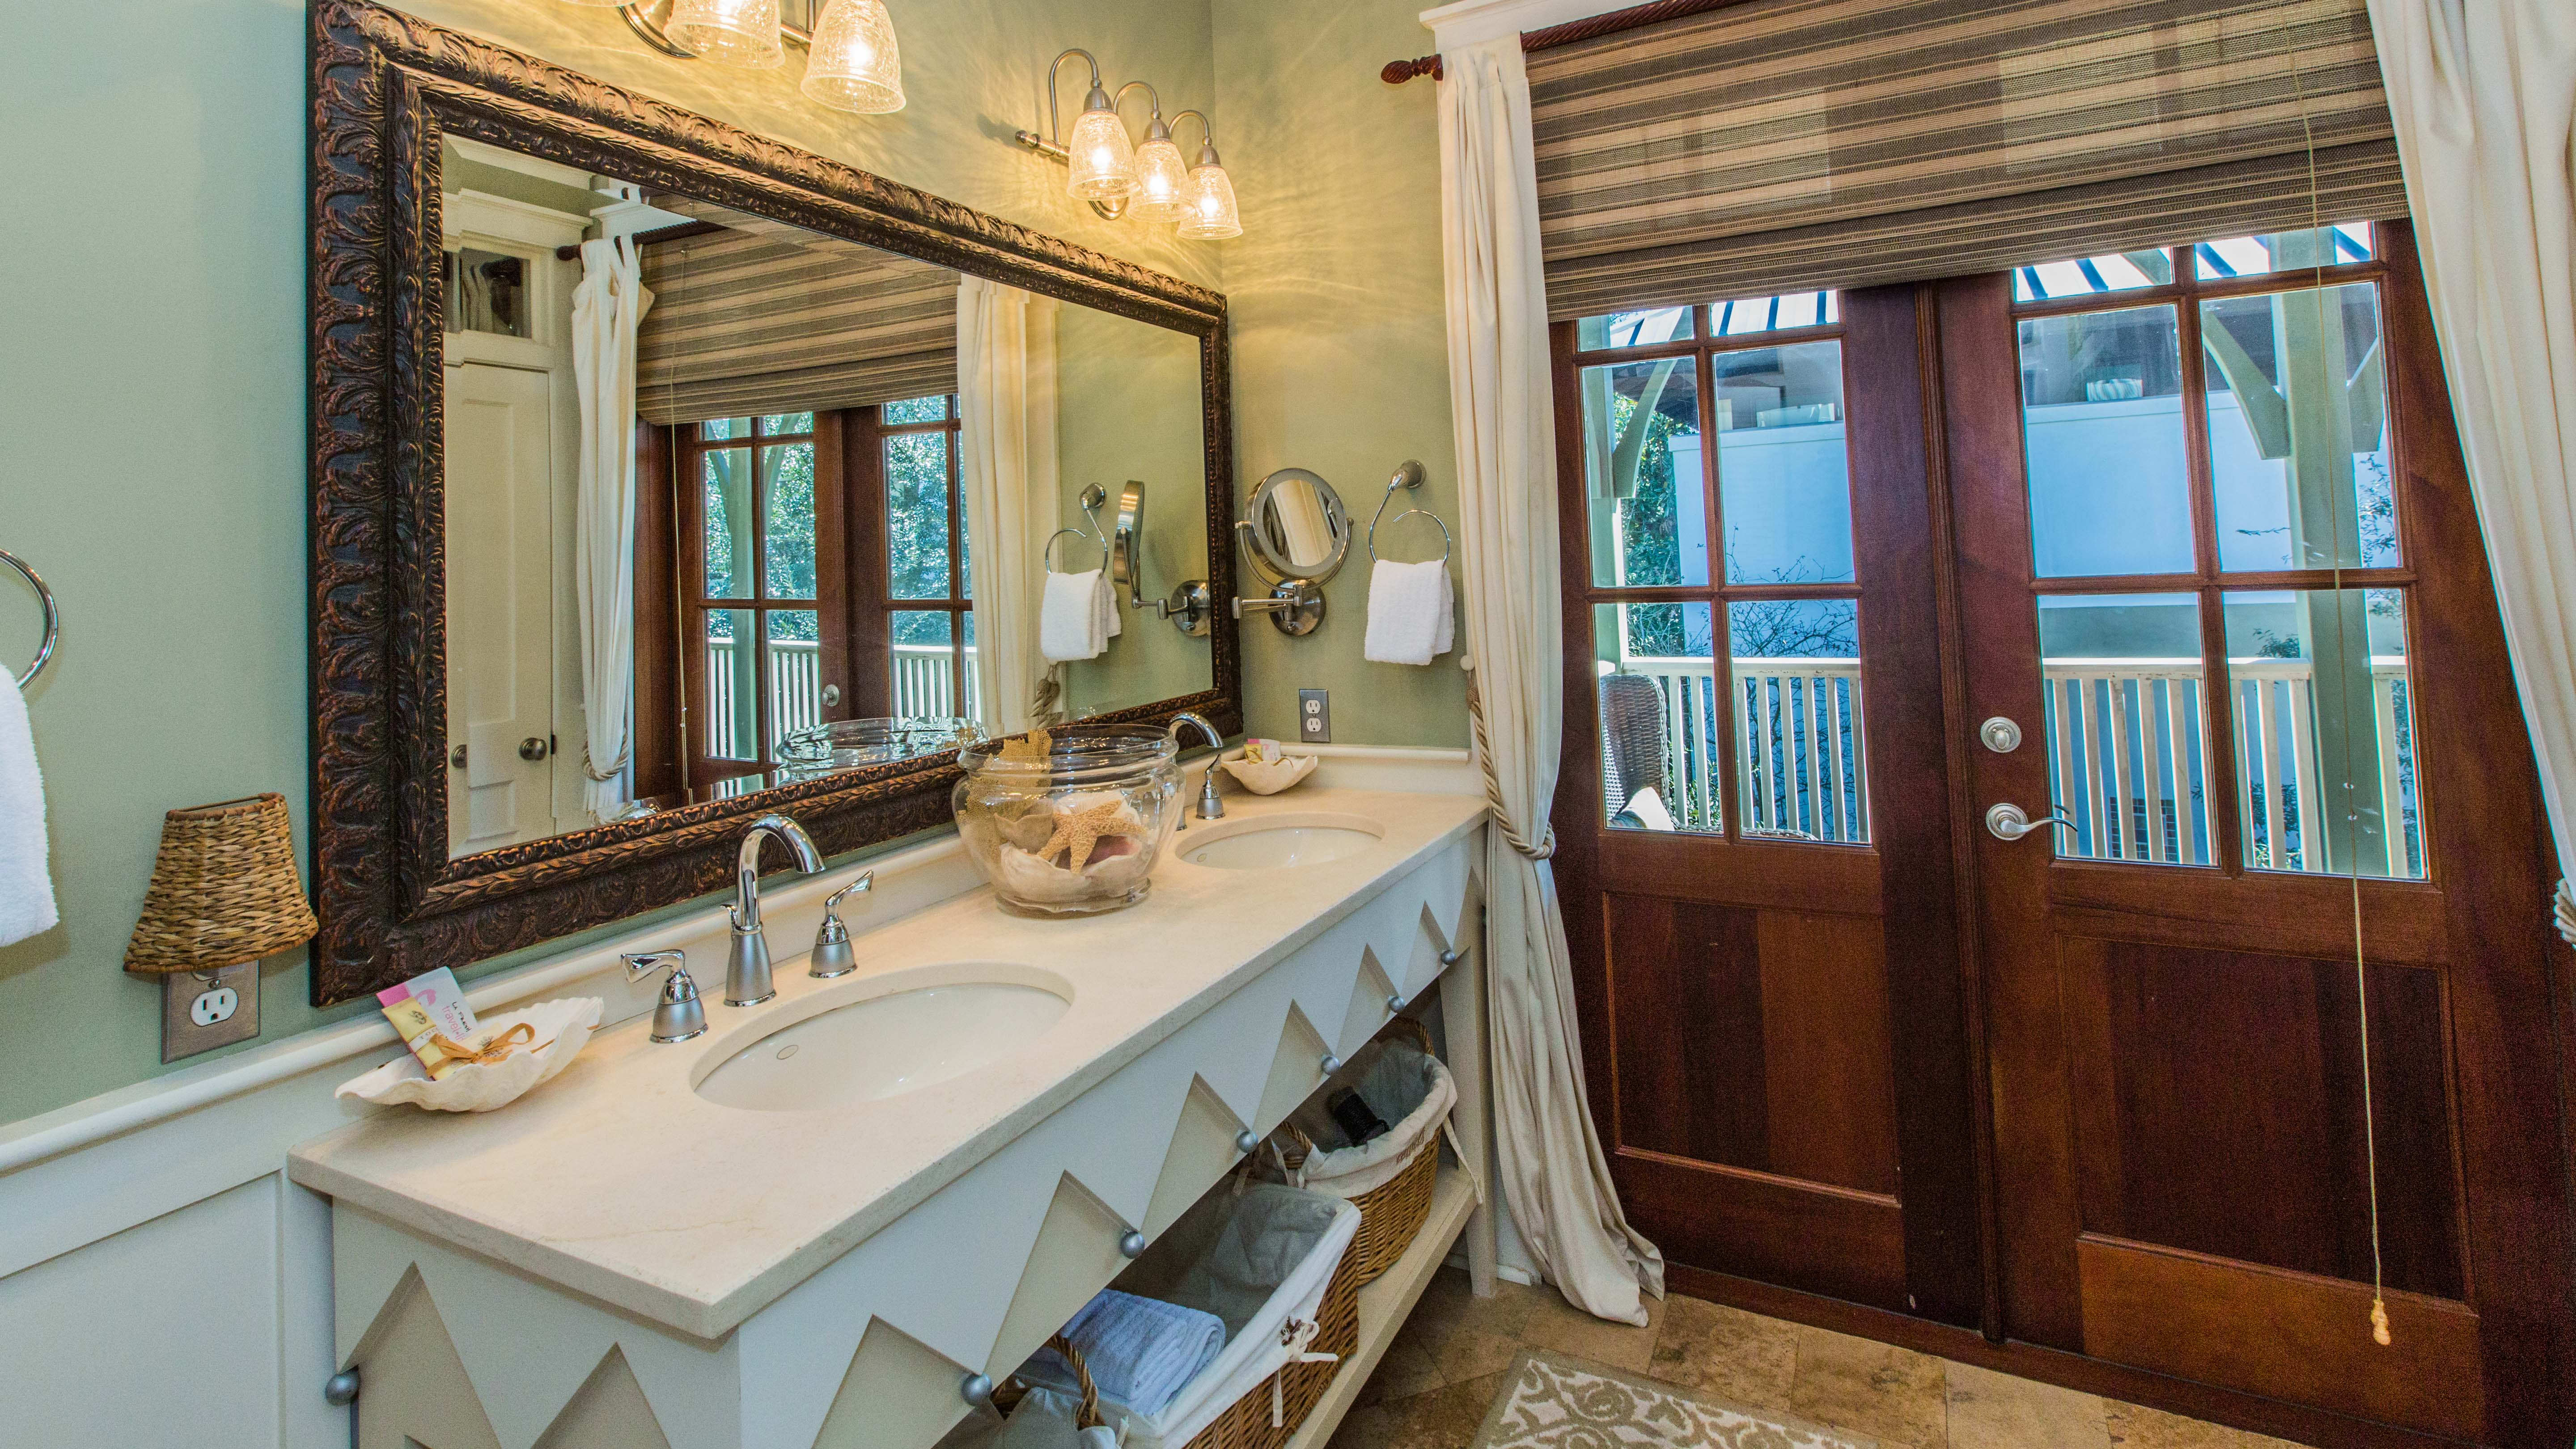 Custom double sinks and view out to private porch